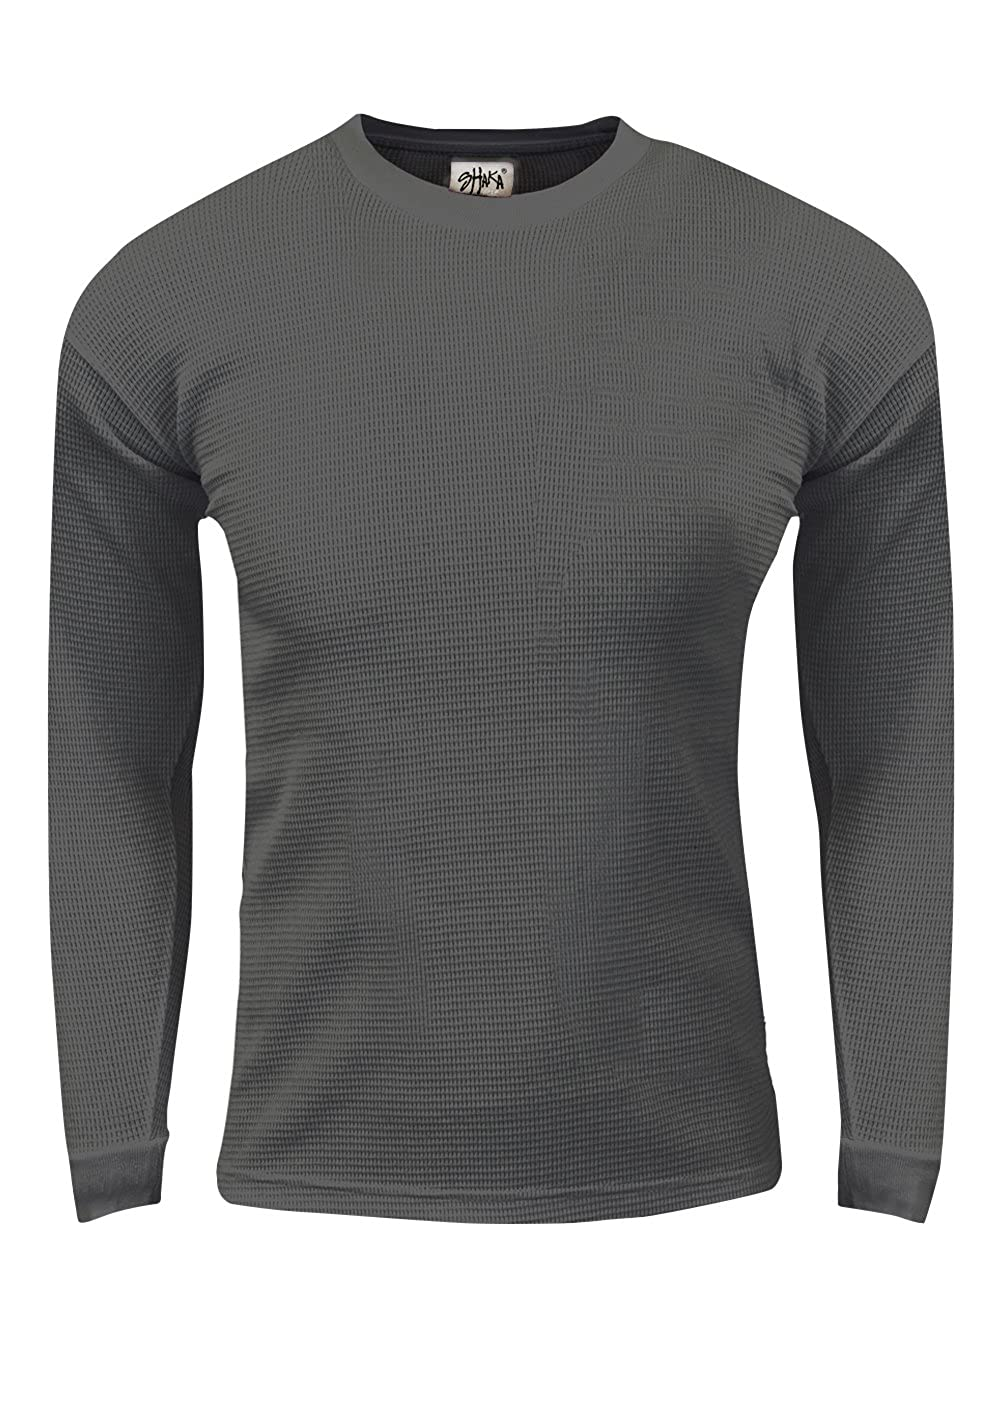 Shaka Wear Mens Thermal Long Sleeve Crewneck Waffle Shirt XS-5XL